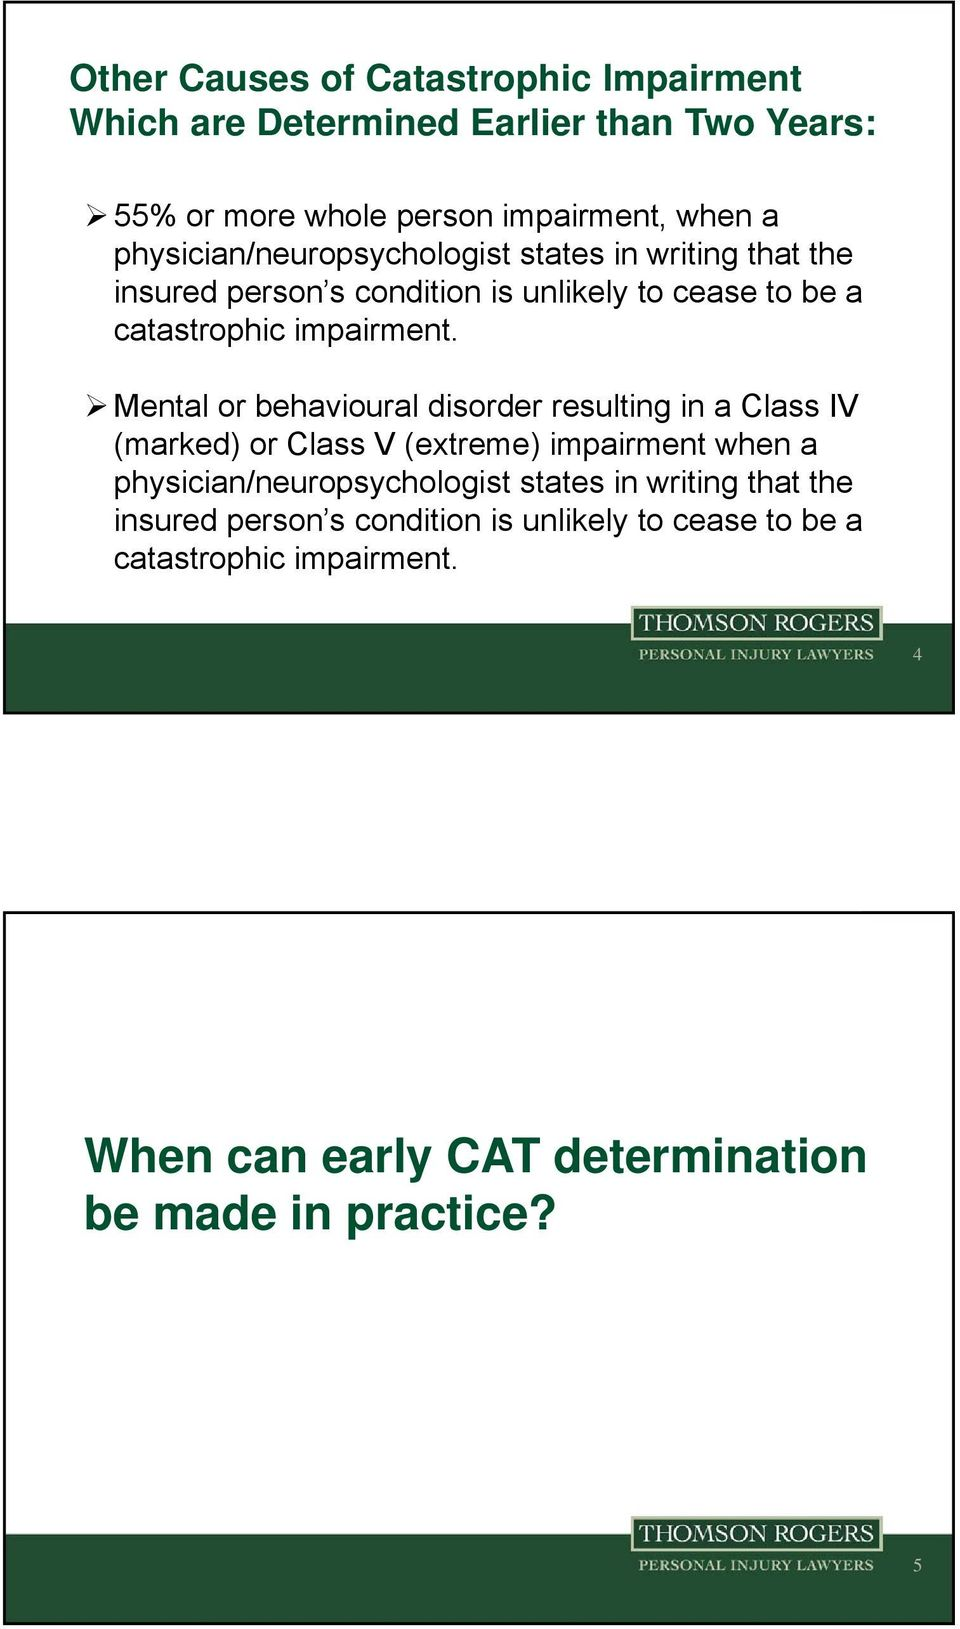 Mental or behavioural disorder resulting in a Class IV (marked) or Class V (extreme) impairment when a  4 When can early CAT determination